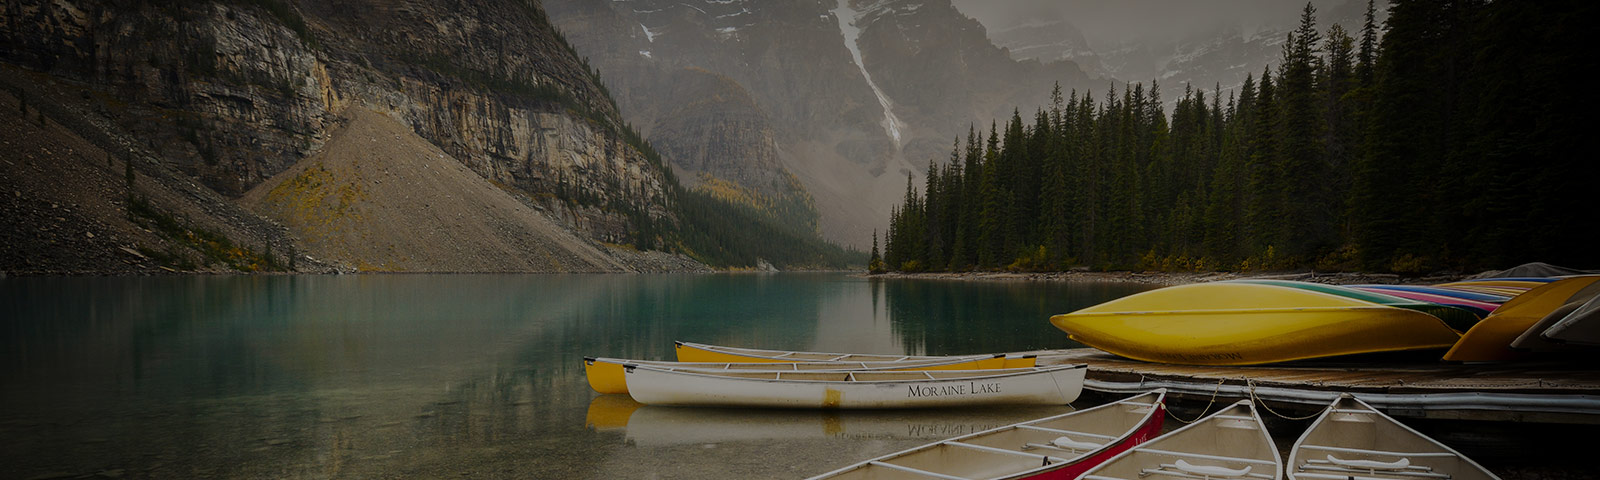 canoes on a lake between mountains